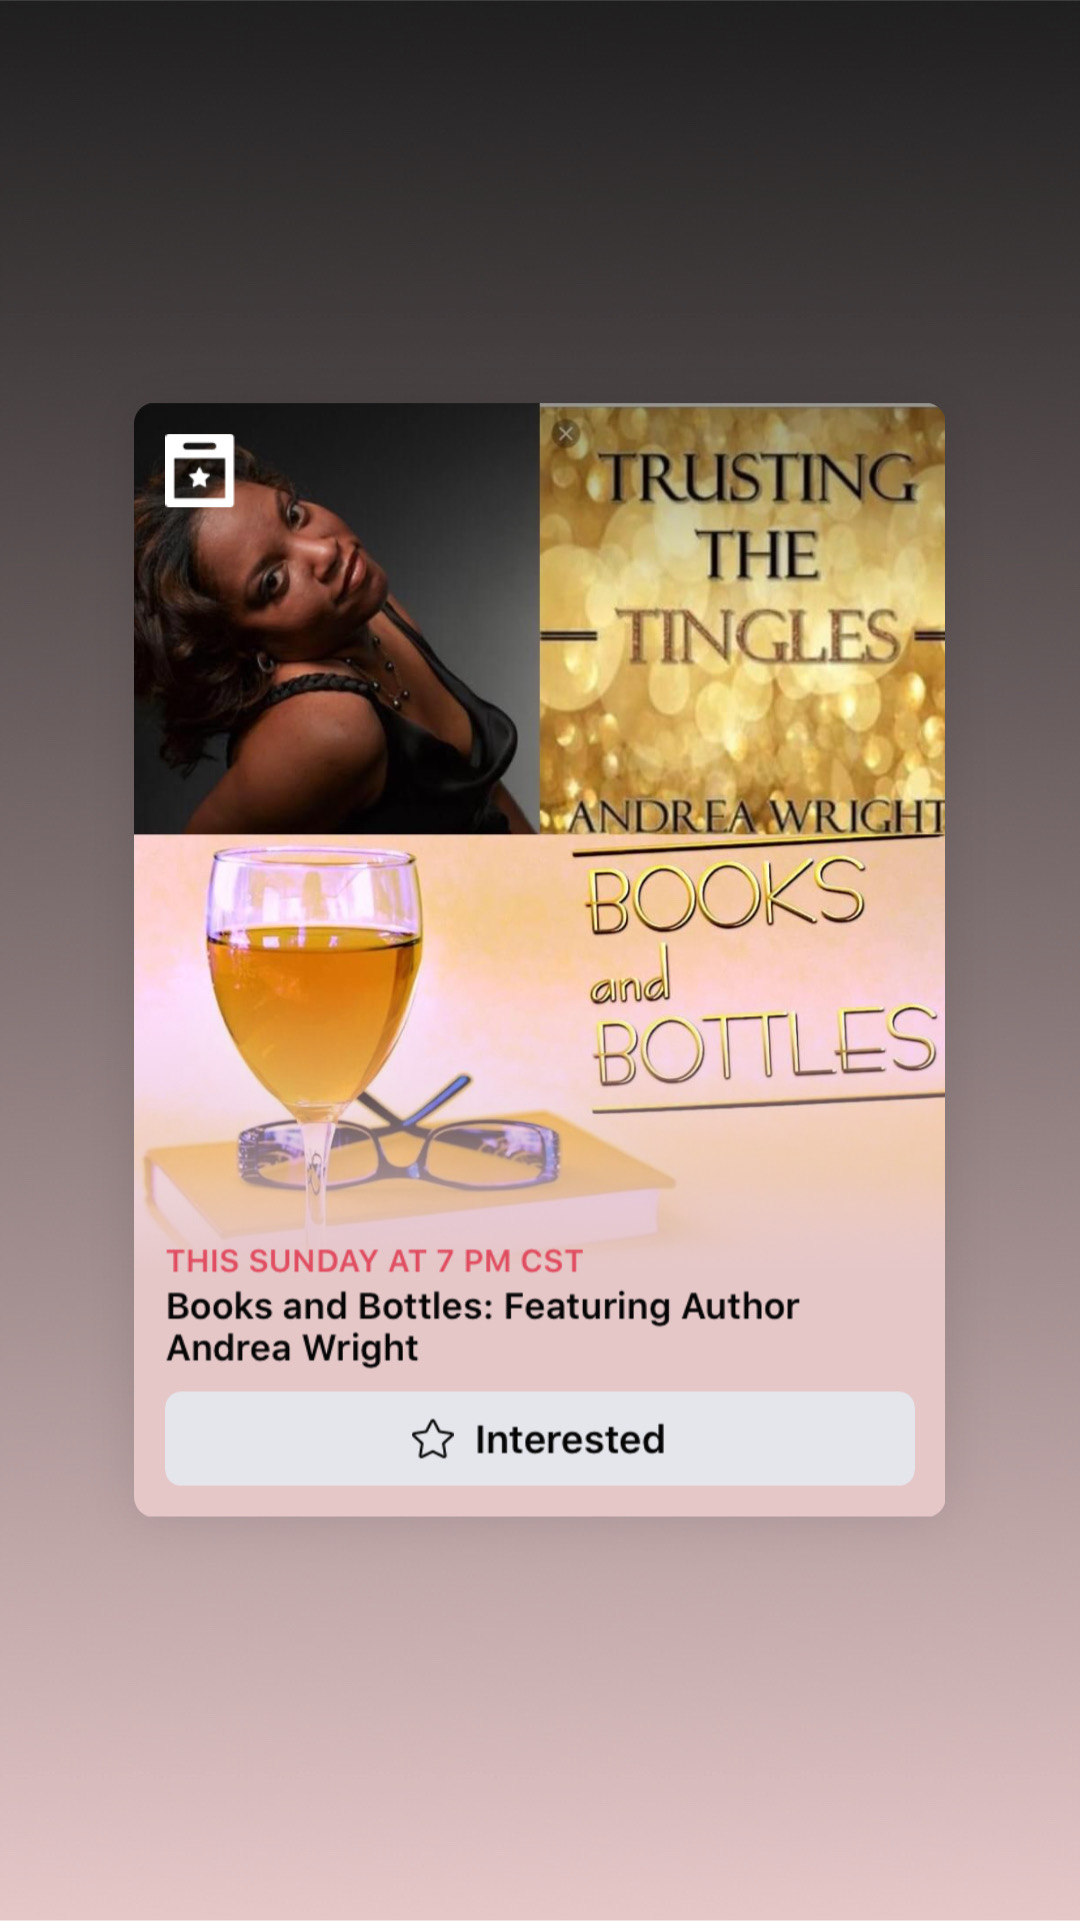 Books and Bottles Featuring Trusting the Tingles